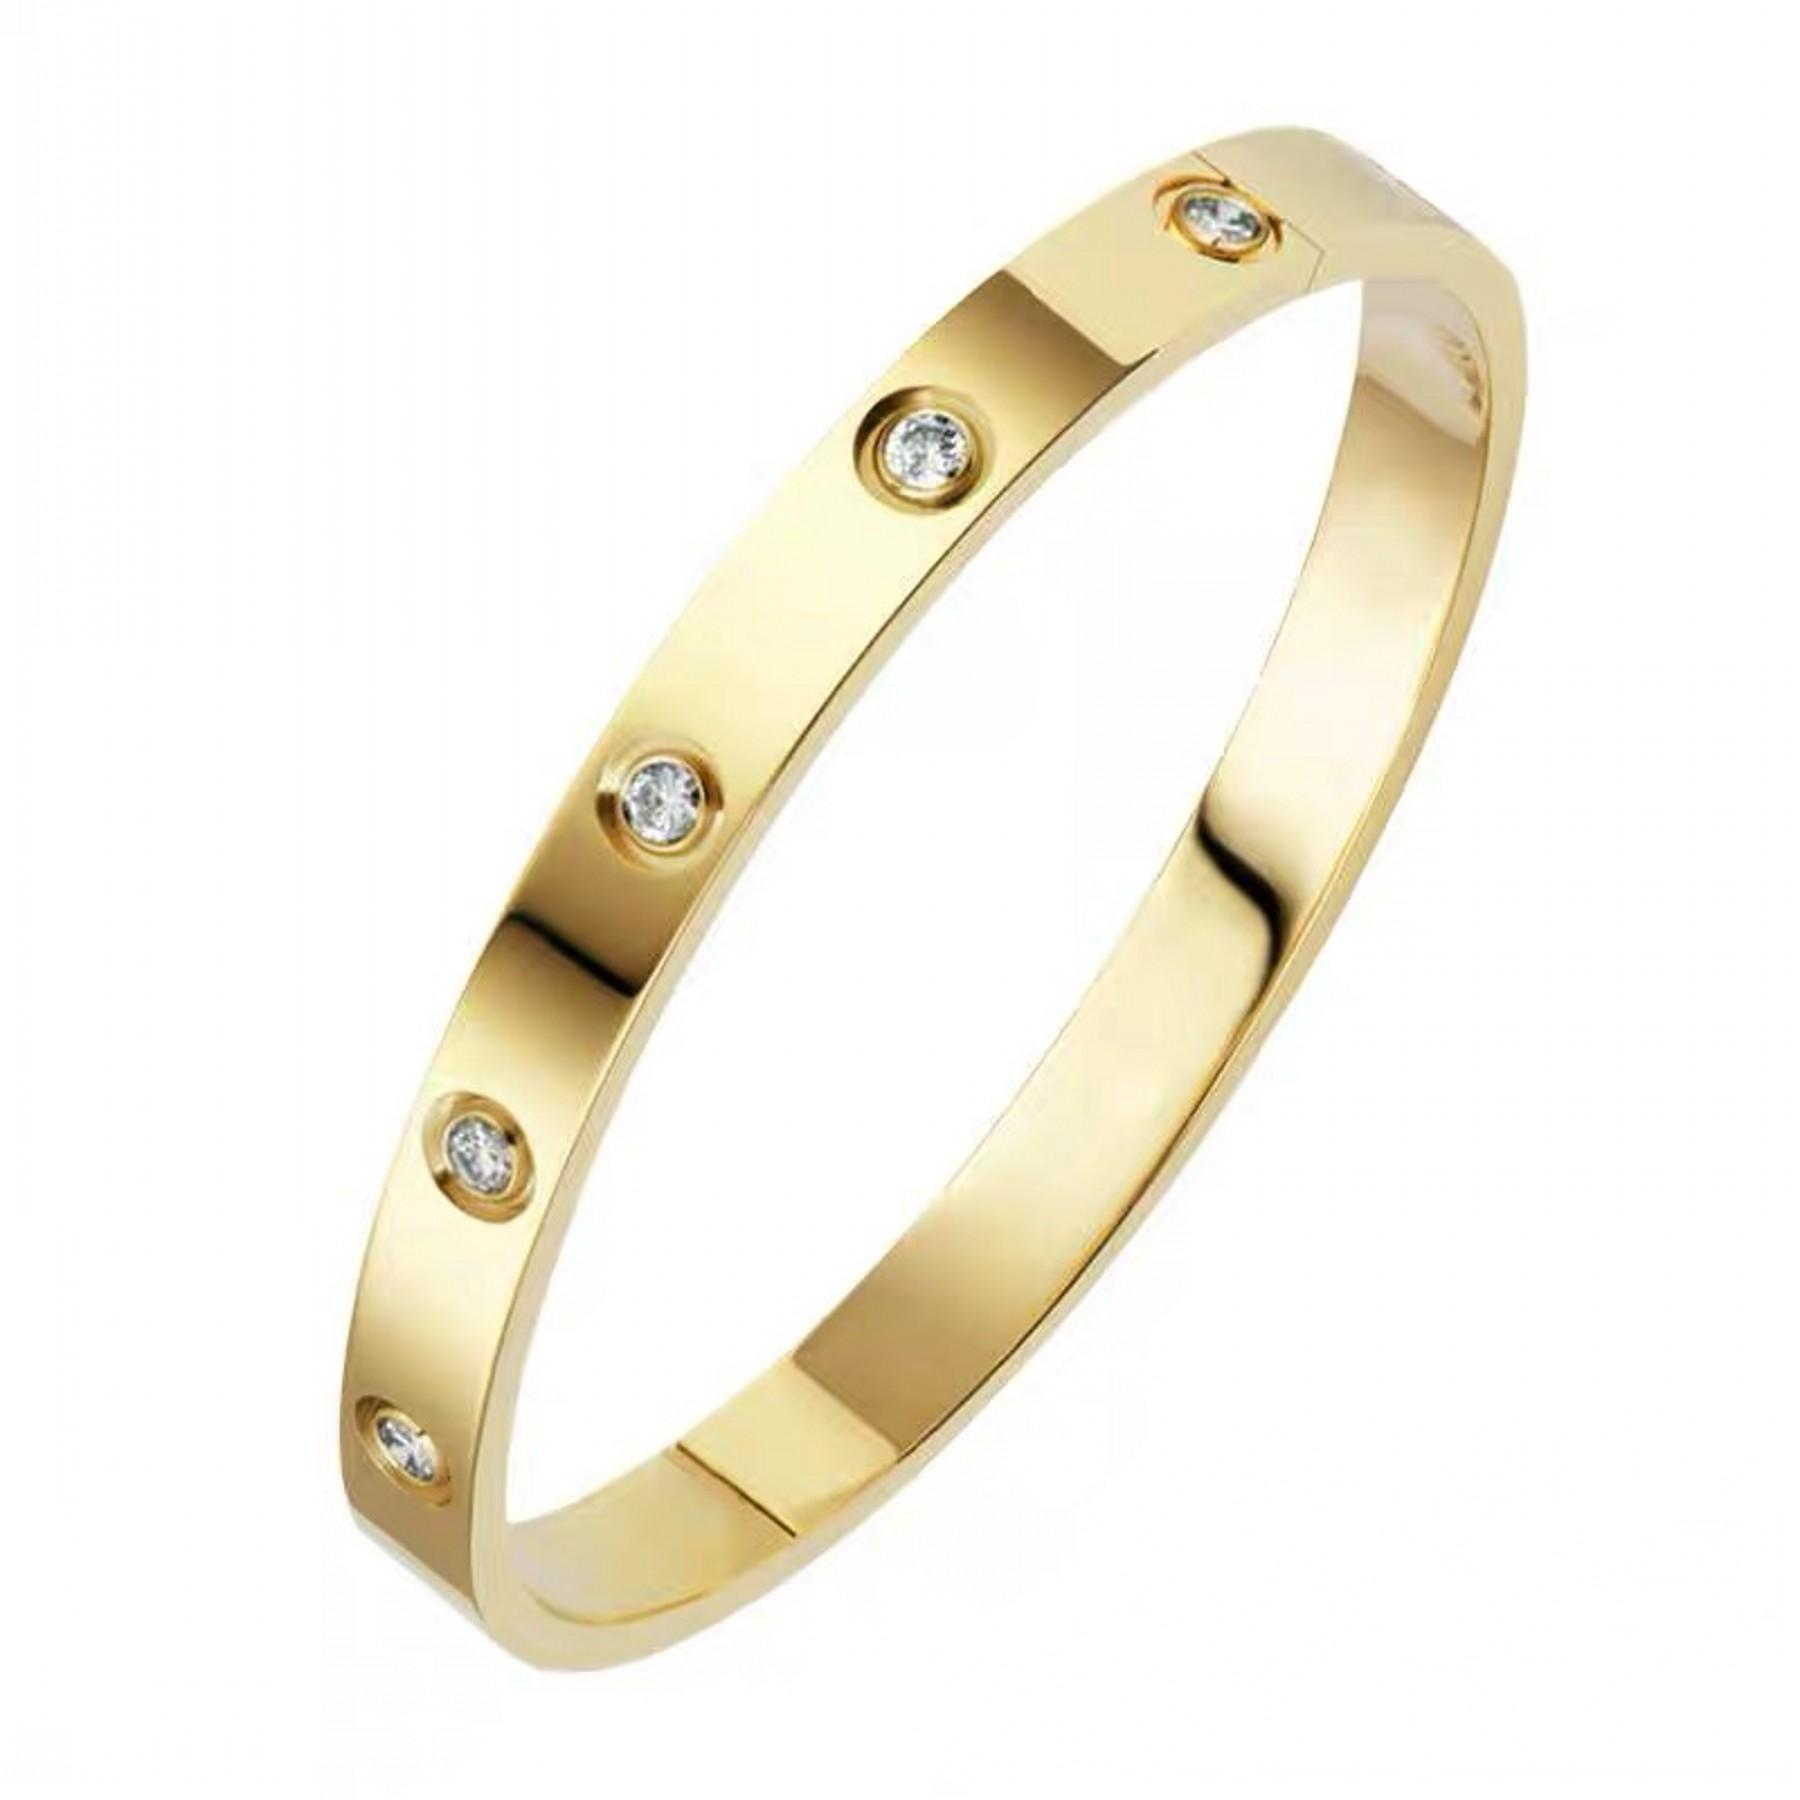 Stainless Steel Bangle Bracelets for Women Bangle Bracelet Set in Heart and CZ Stone Jewelry Fits 6.5-7.5 Inch Wrists